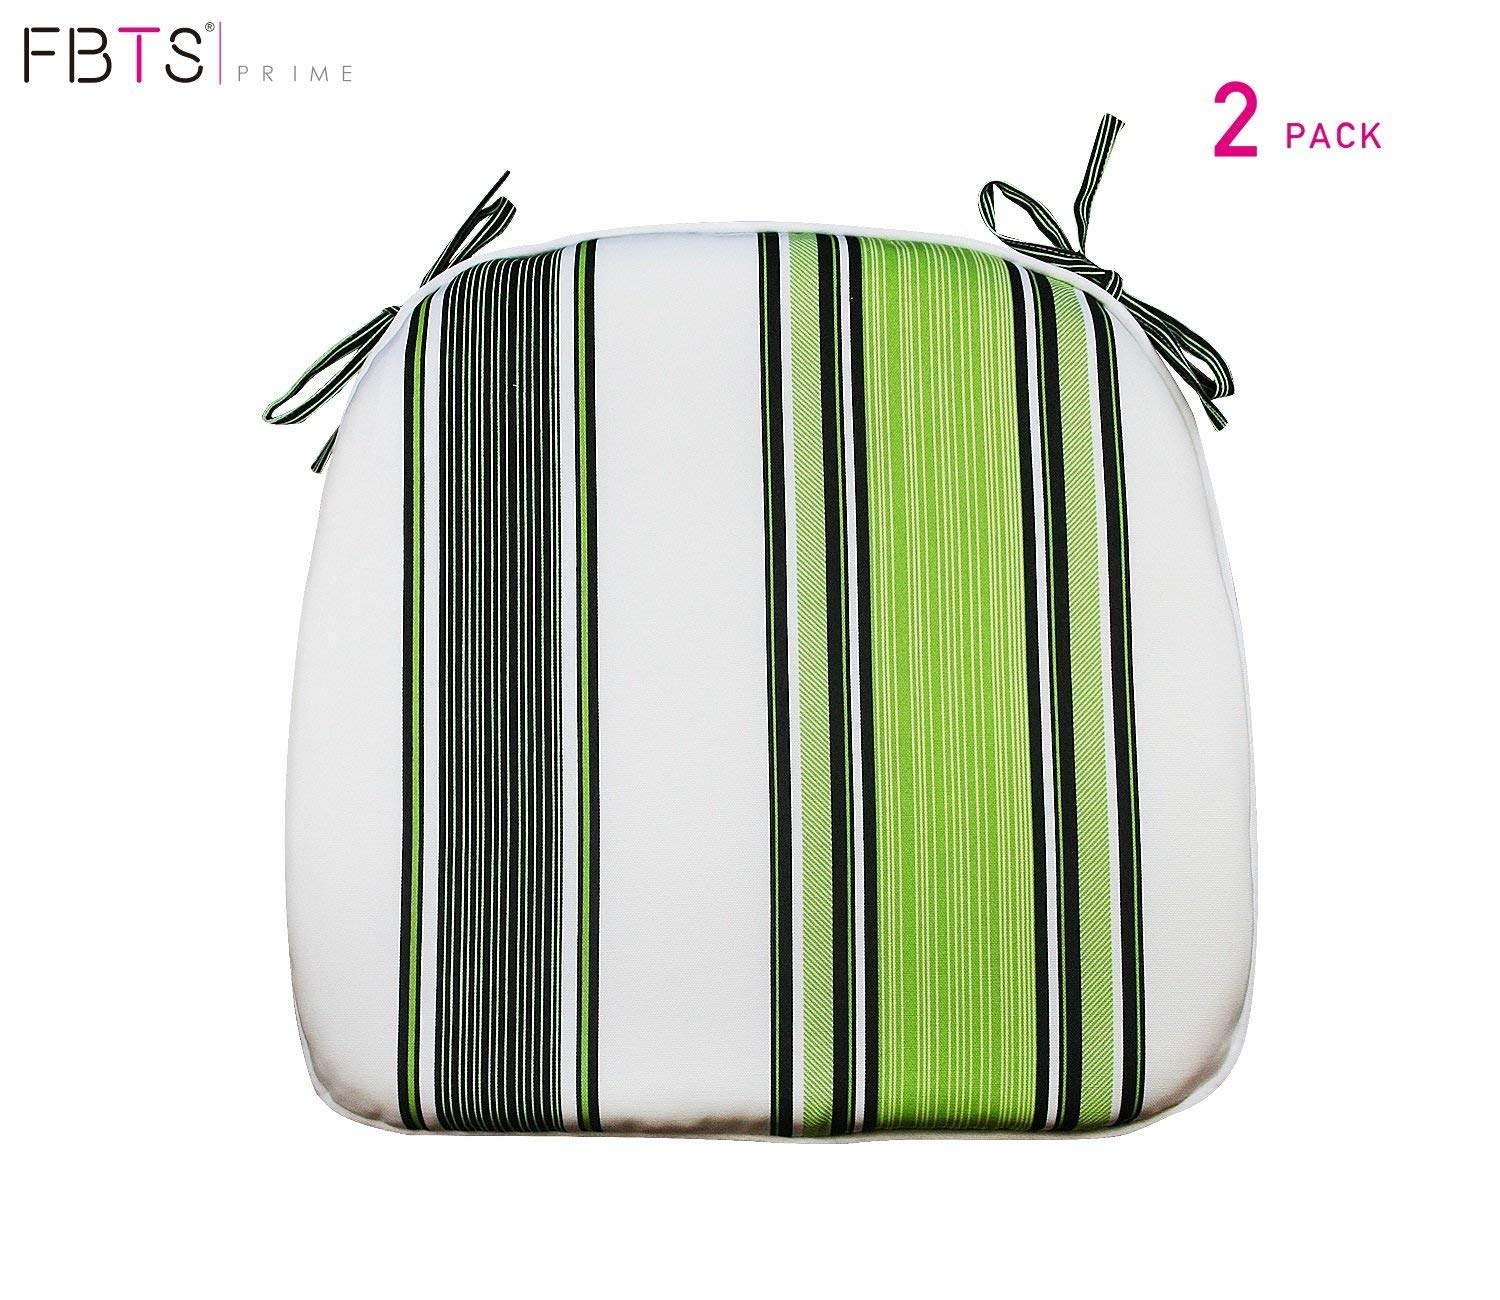 FBTS Prime Outdoor Chair Cushions (Set of 2) 16x17 inches Patio Seat Cushions Navy Green and White Stripe Square Chair Pads for Outdoor Patio Furniture Garden Home Office